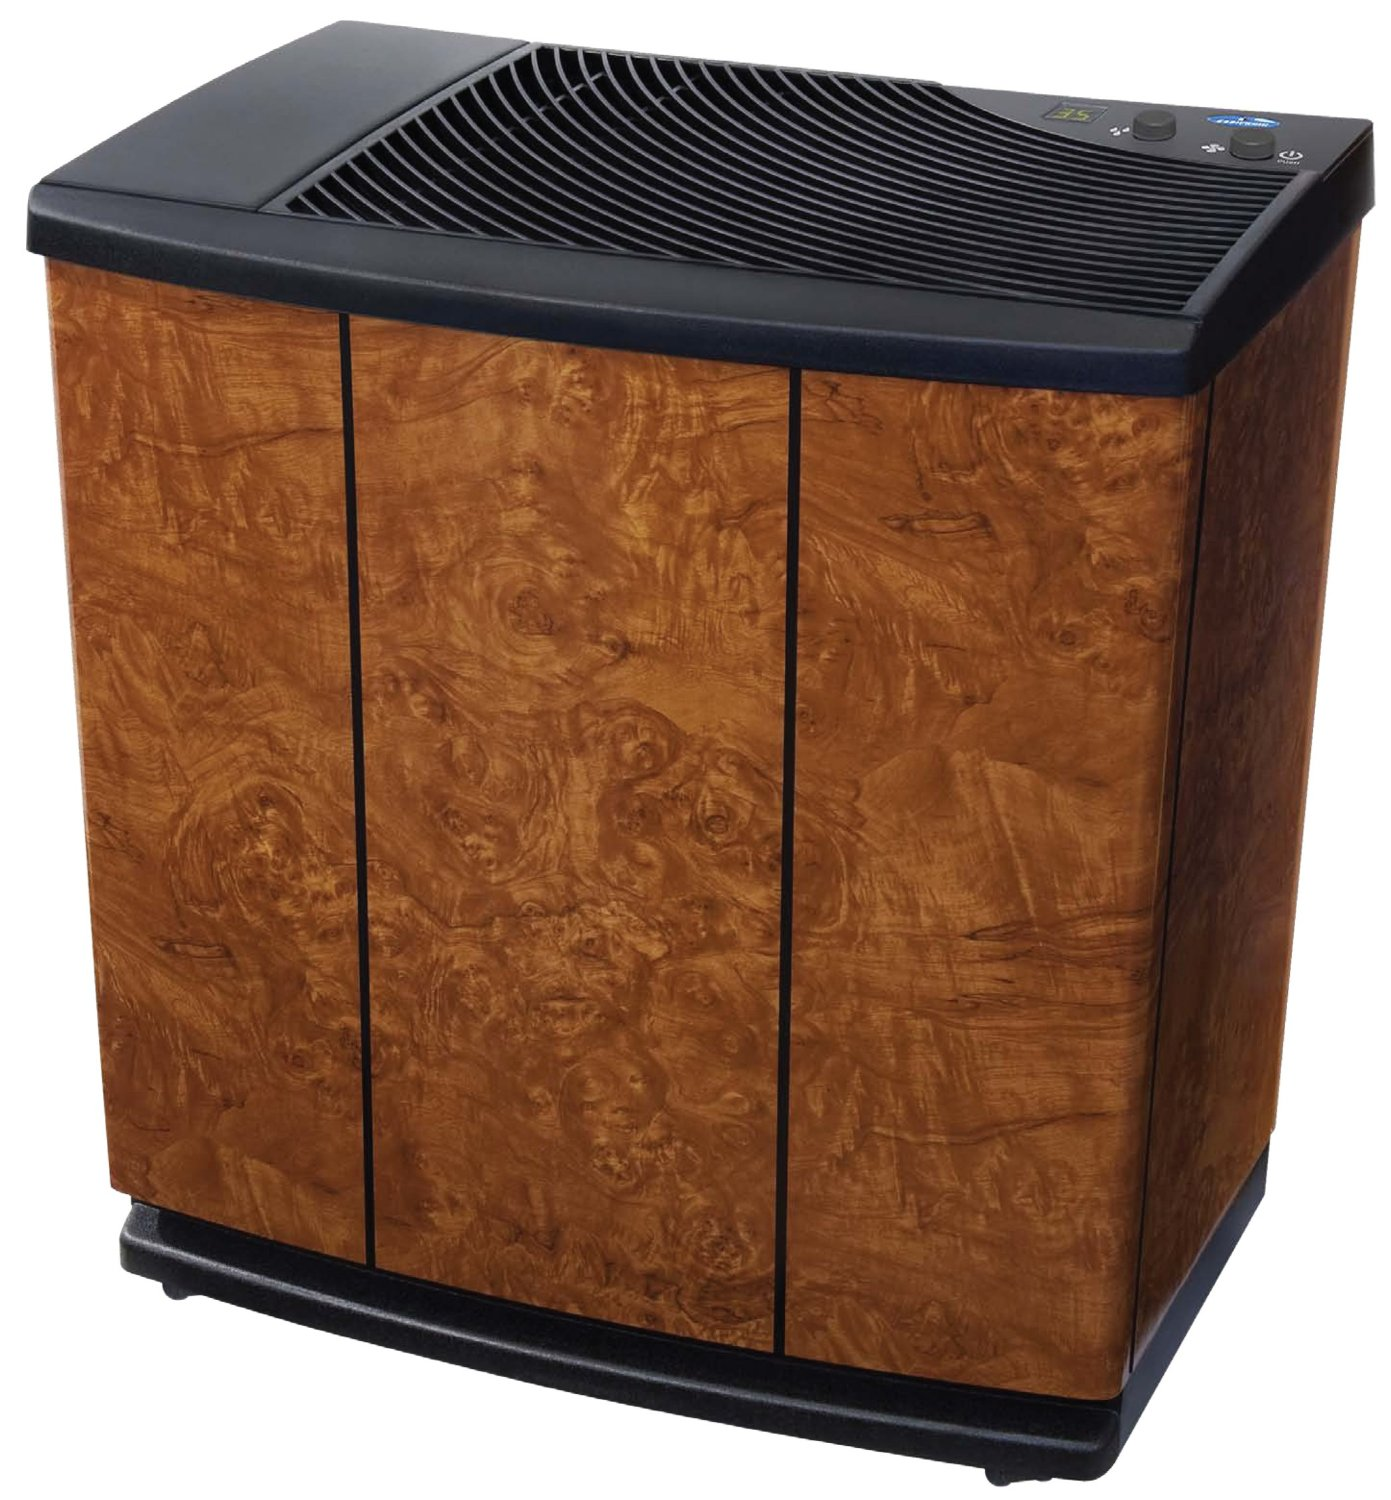 Essick Air H12 400HB 3 Speed Whole House Evaporative Console Humidifier   Oak Burl. Best Humidifier for Allergies 2017  Tips and Guides